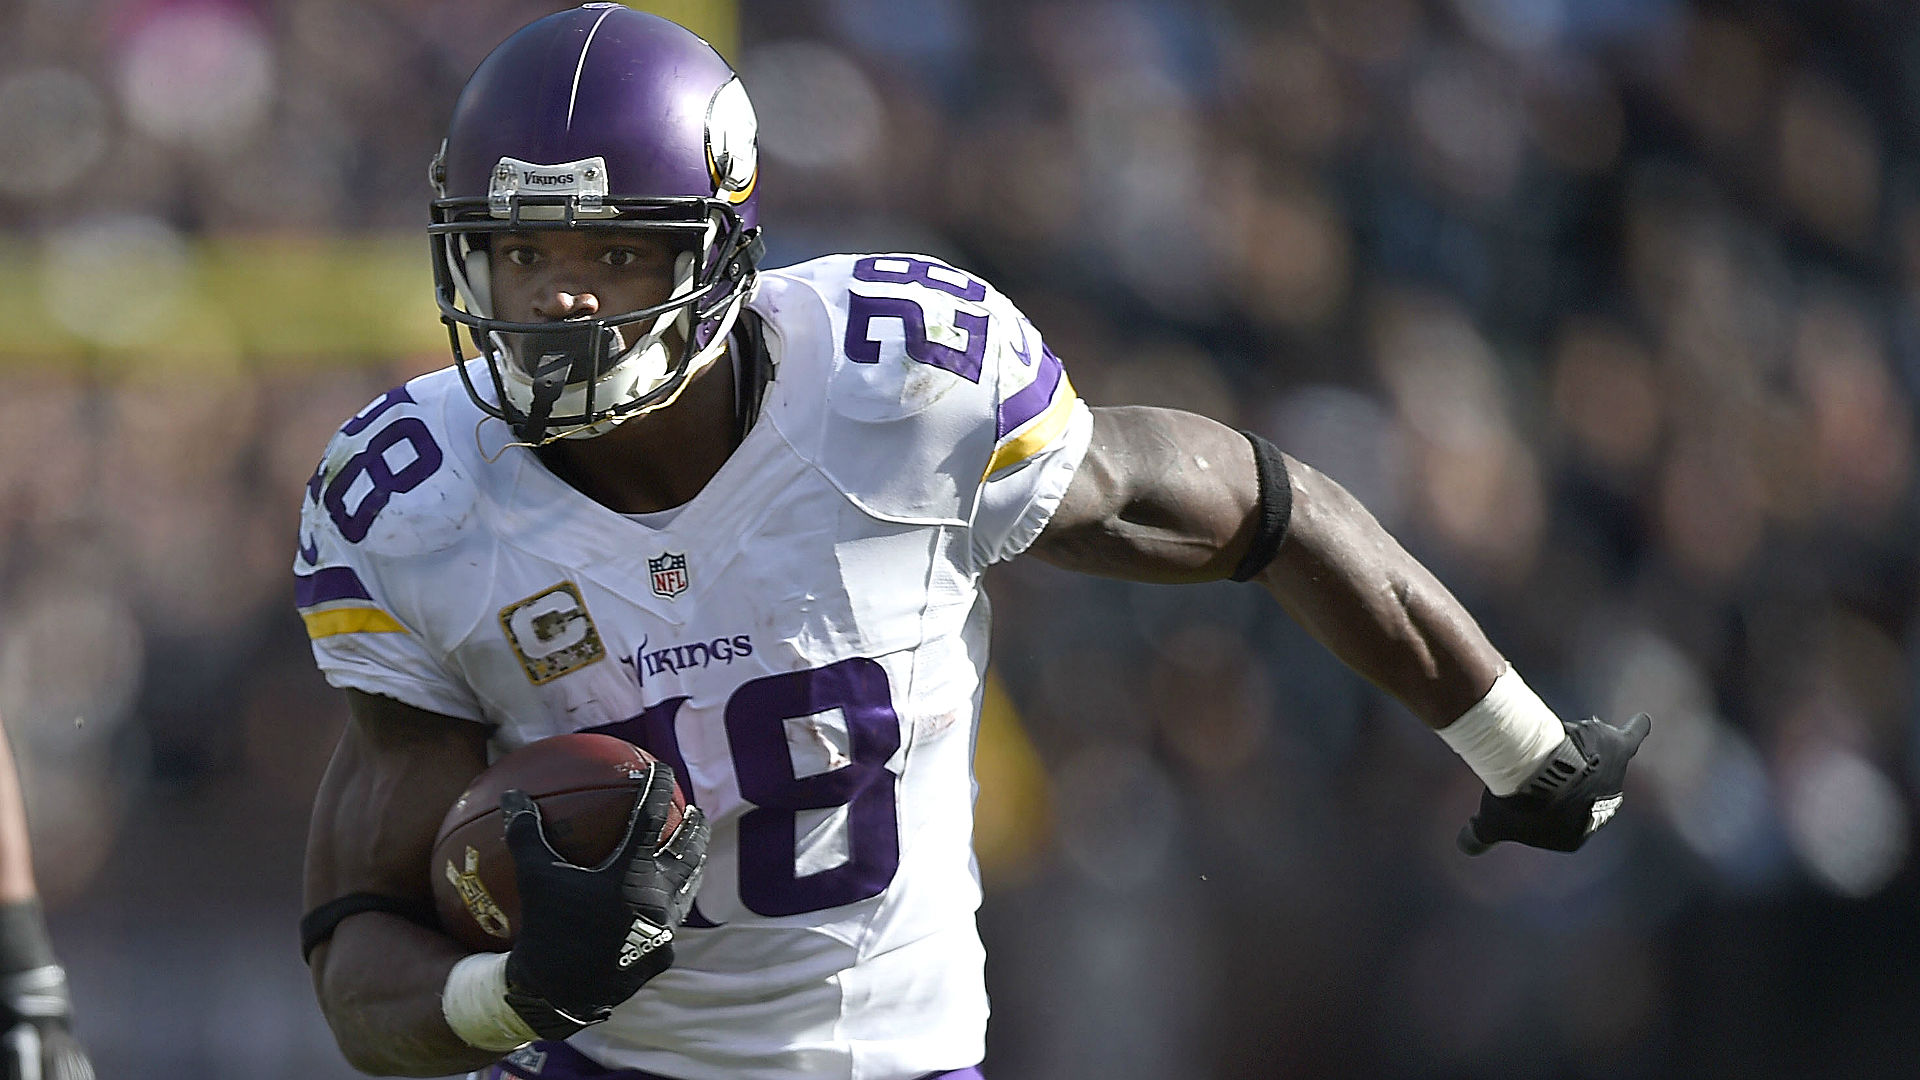 NFL Week 11 opening betting lines – Packers vs. Vikings clash hovers around a pick 'em